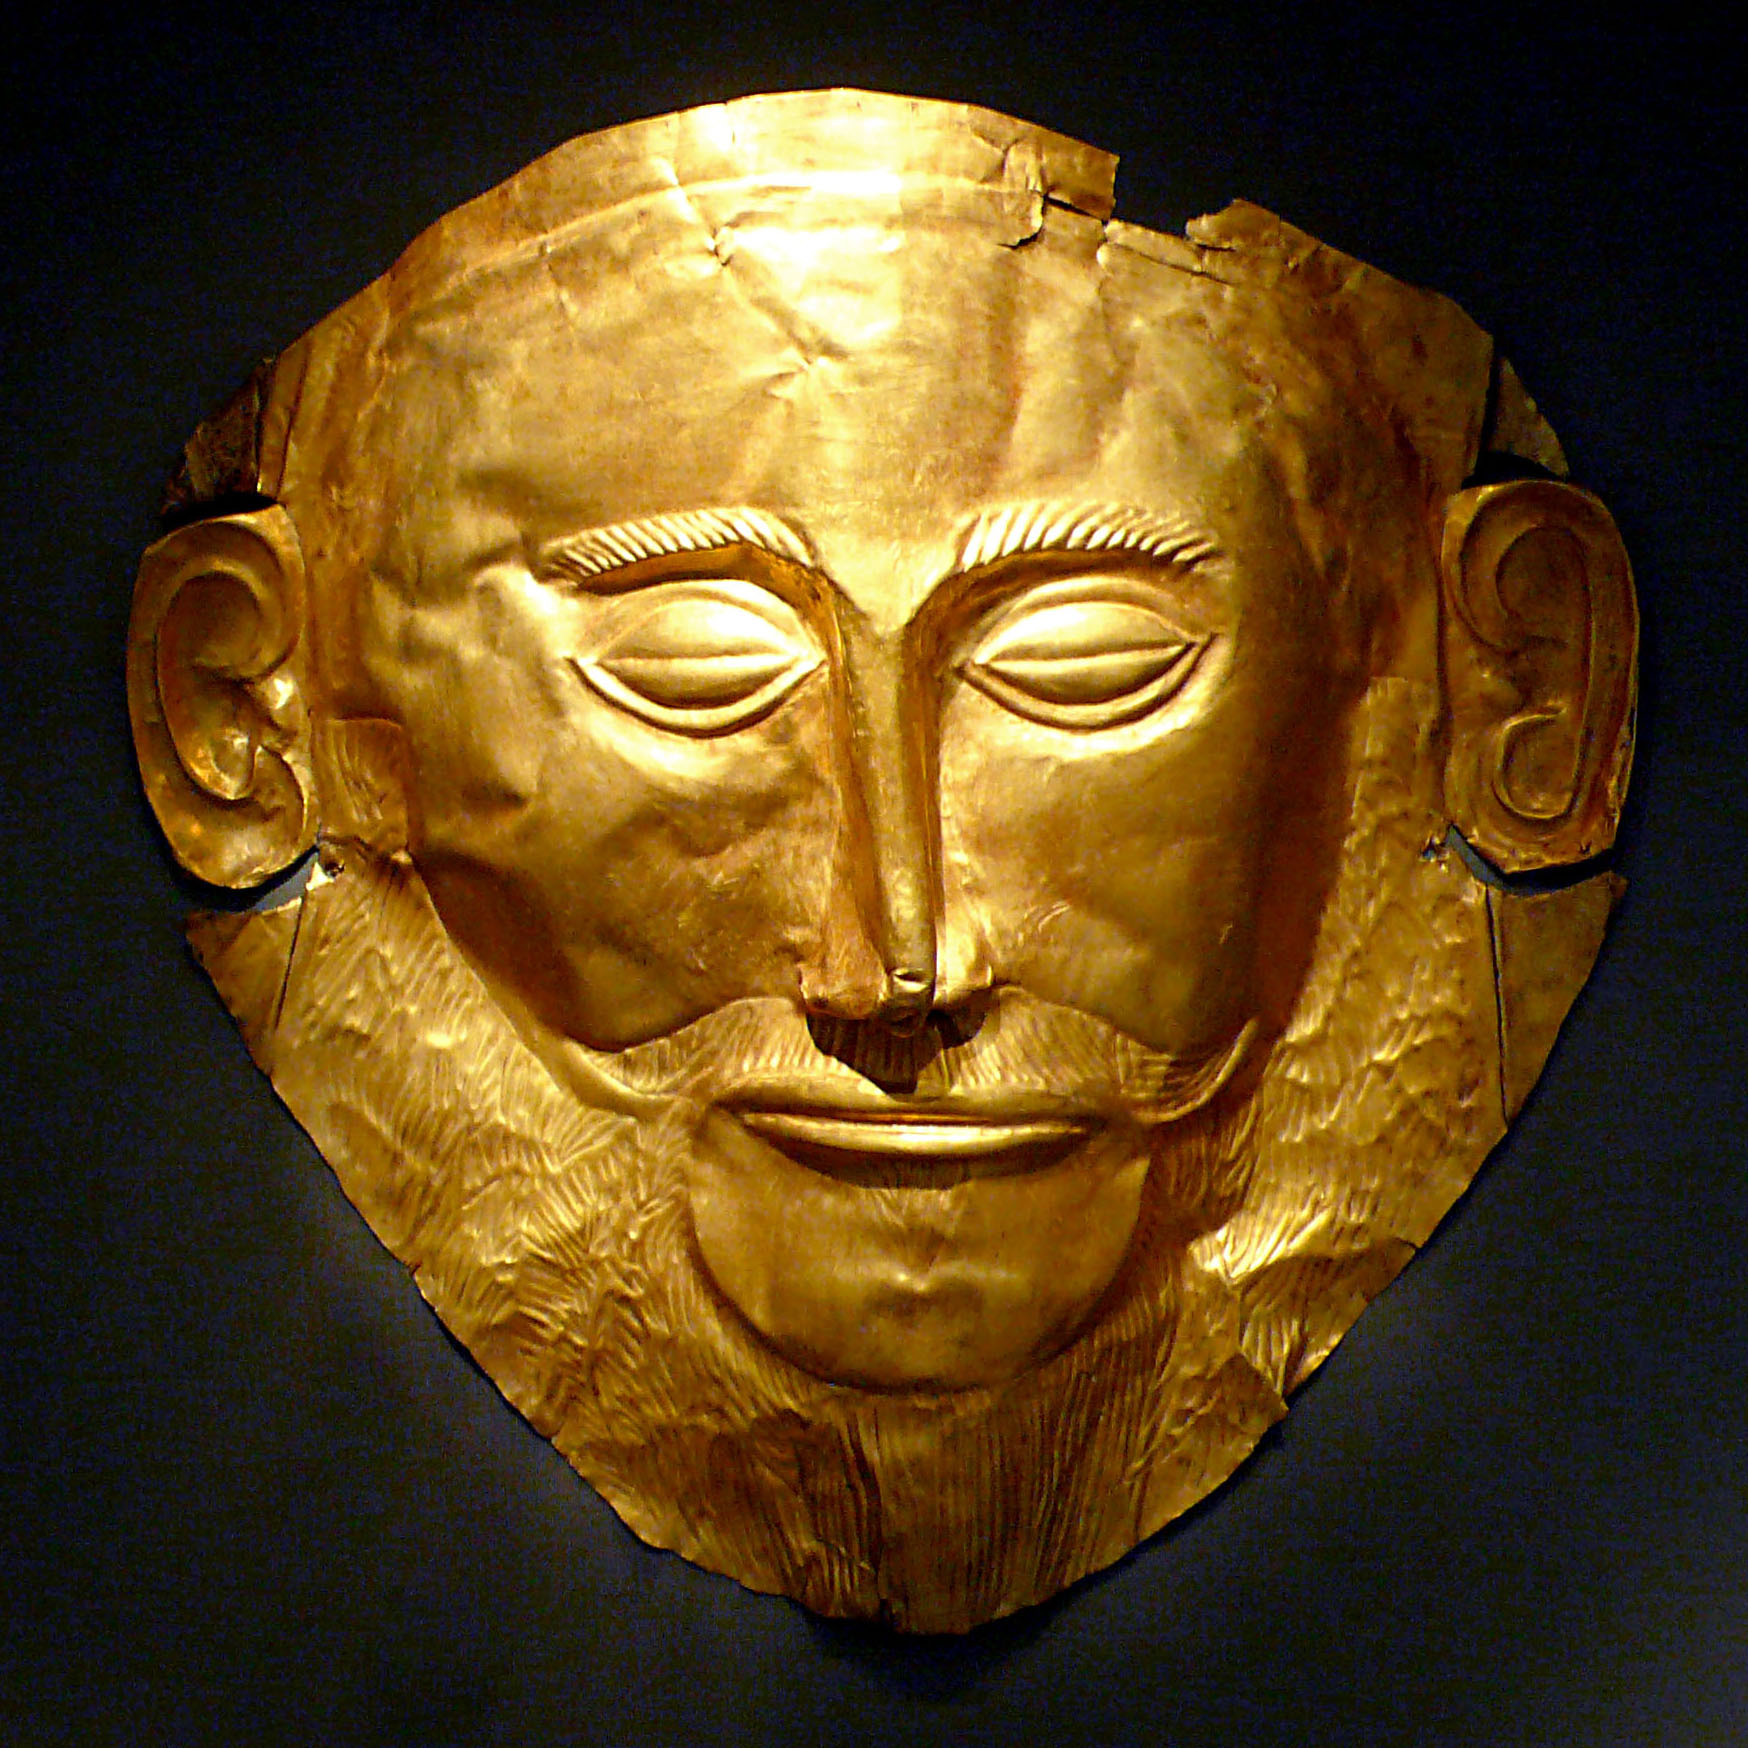 The mask of Agamemnon was discovered Heinrich Schliemann in 1876 at Mycenae, and is now believed to pre-date back to the Trojan War.